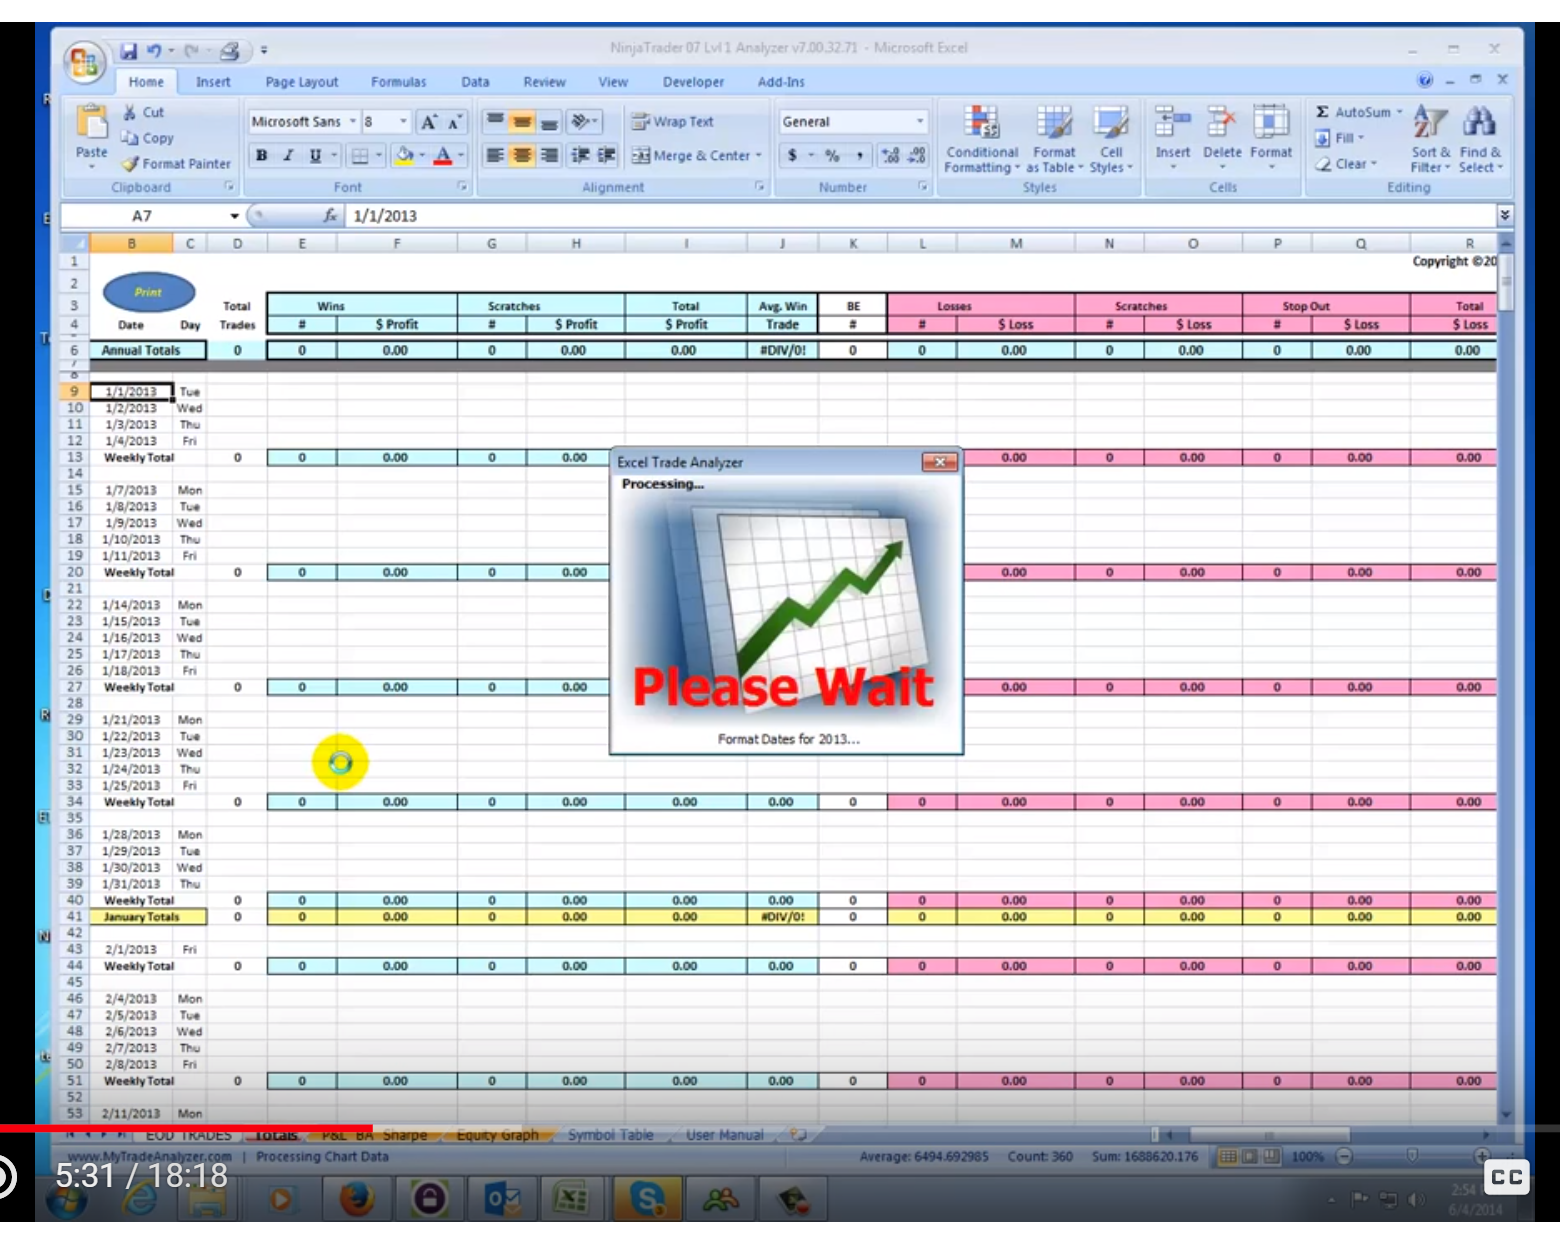 Use this Excel file to analyze your stock trades